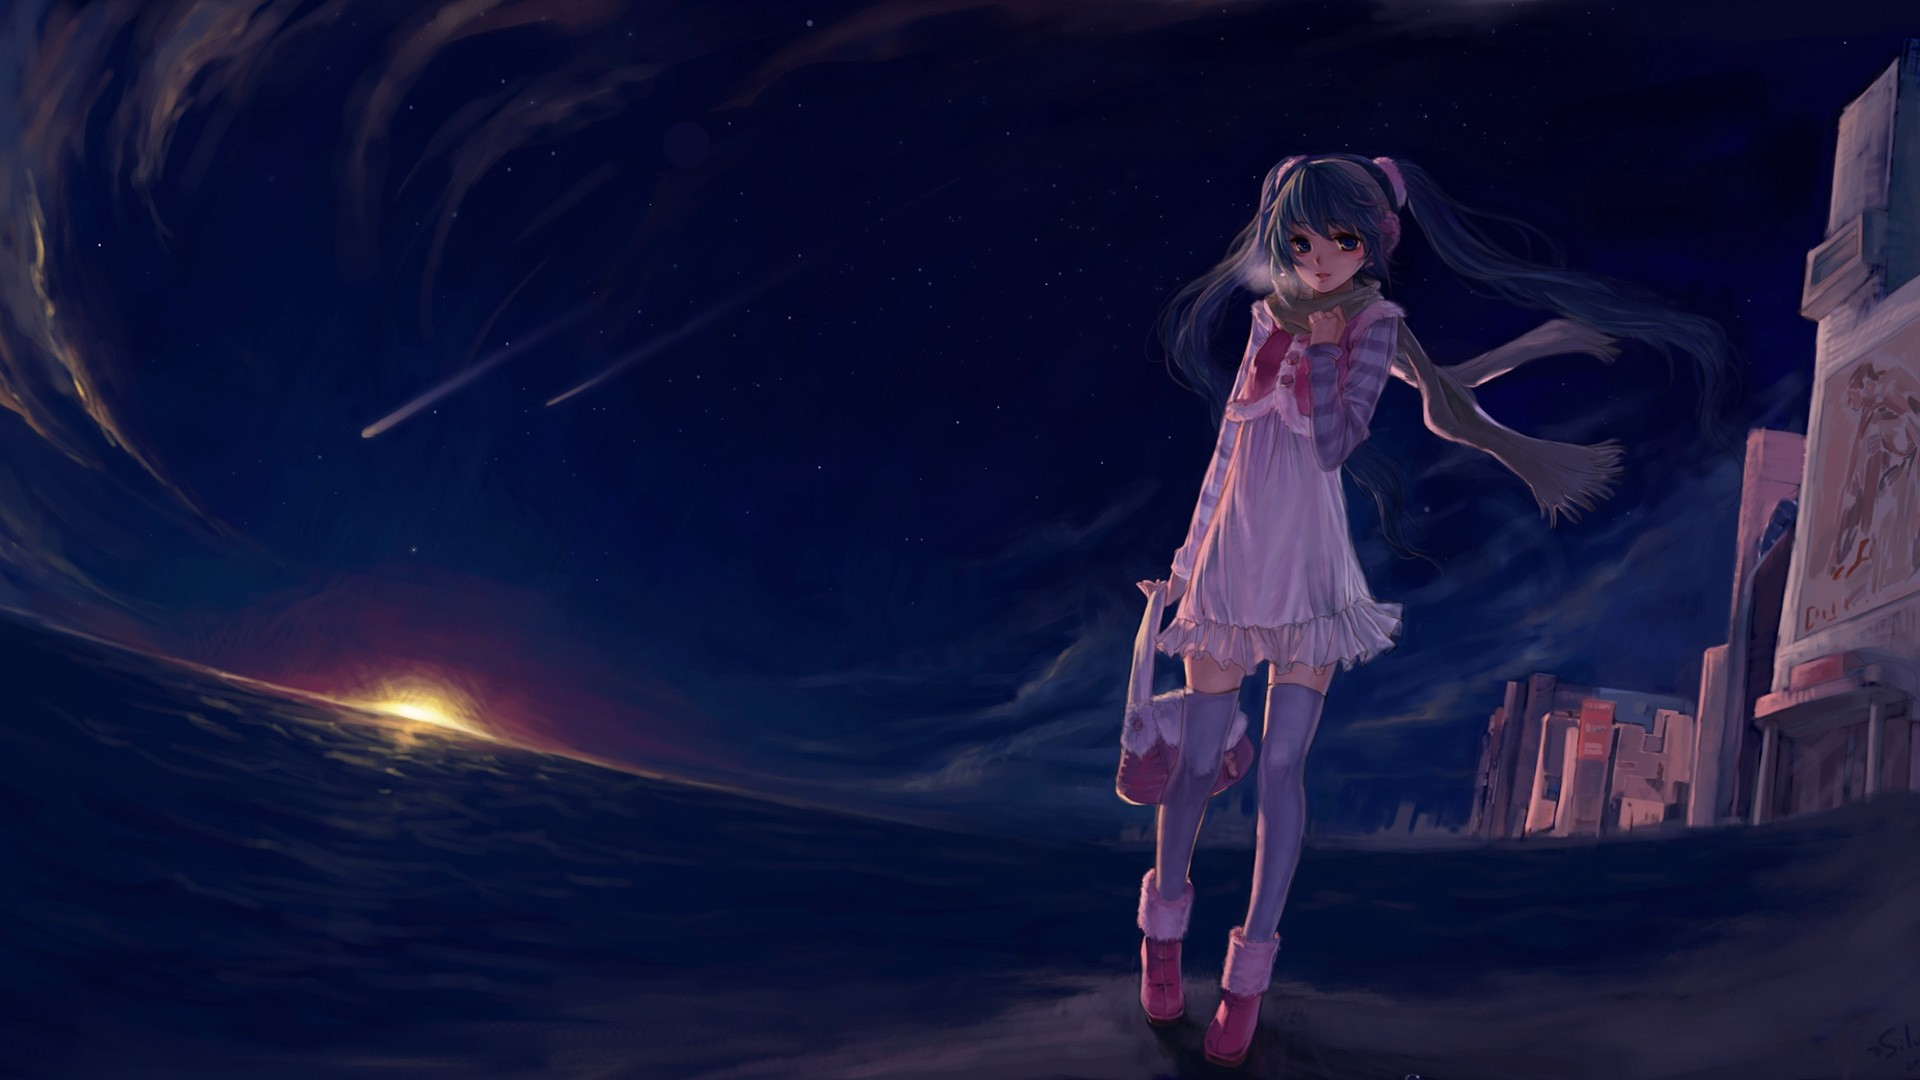 Night Anime Girl HD Download